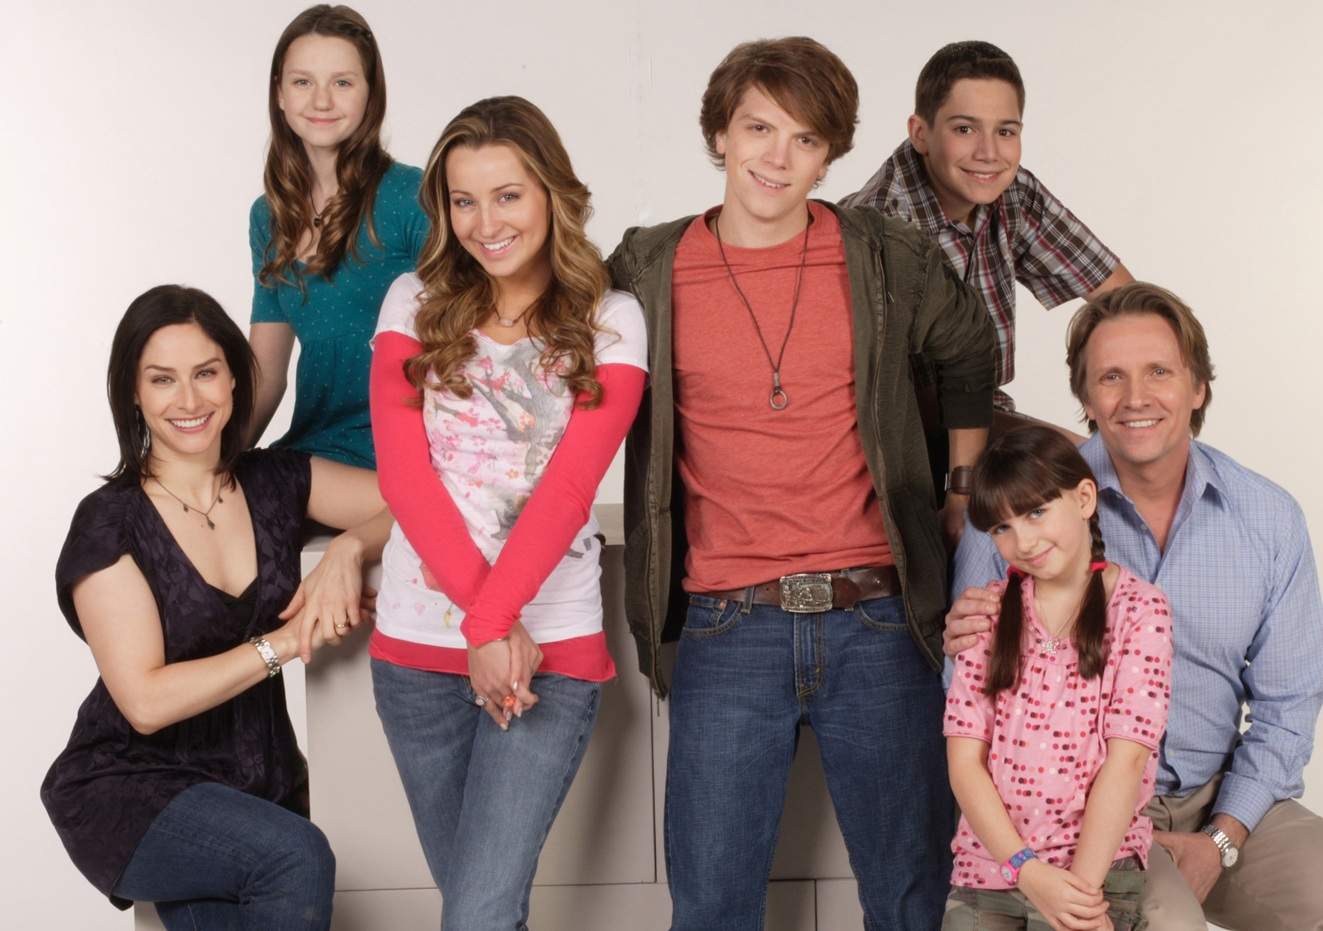 Life with derek porn